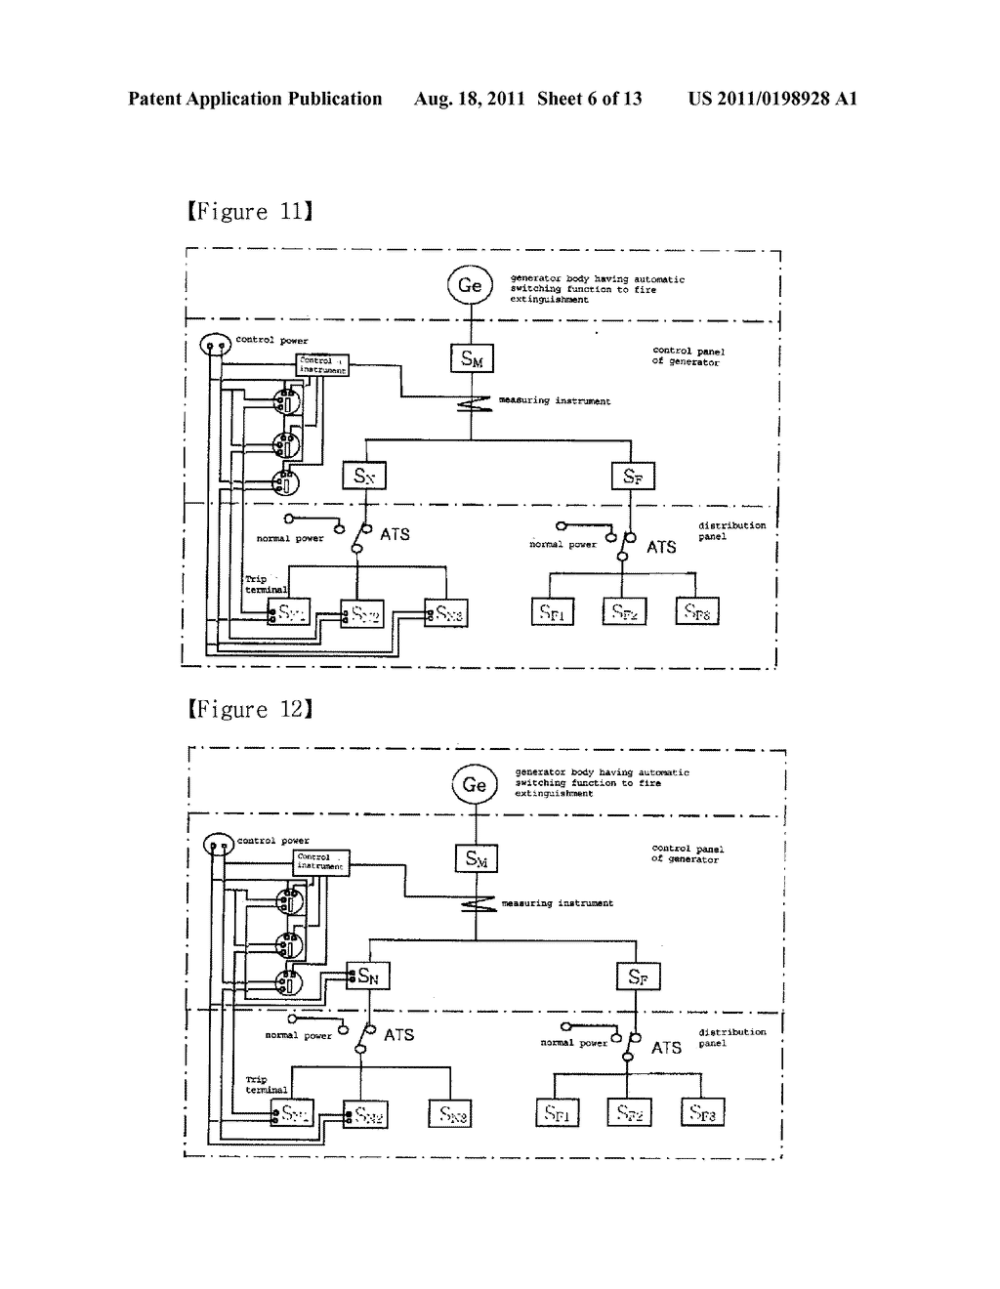 medium resolution of emergency generator power system with reserved fire protection power diagram schematic and image 07